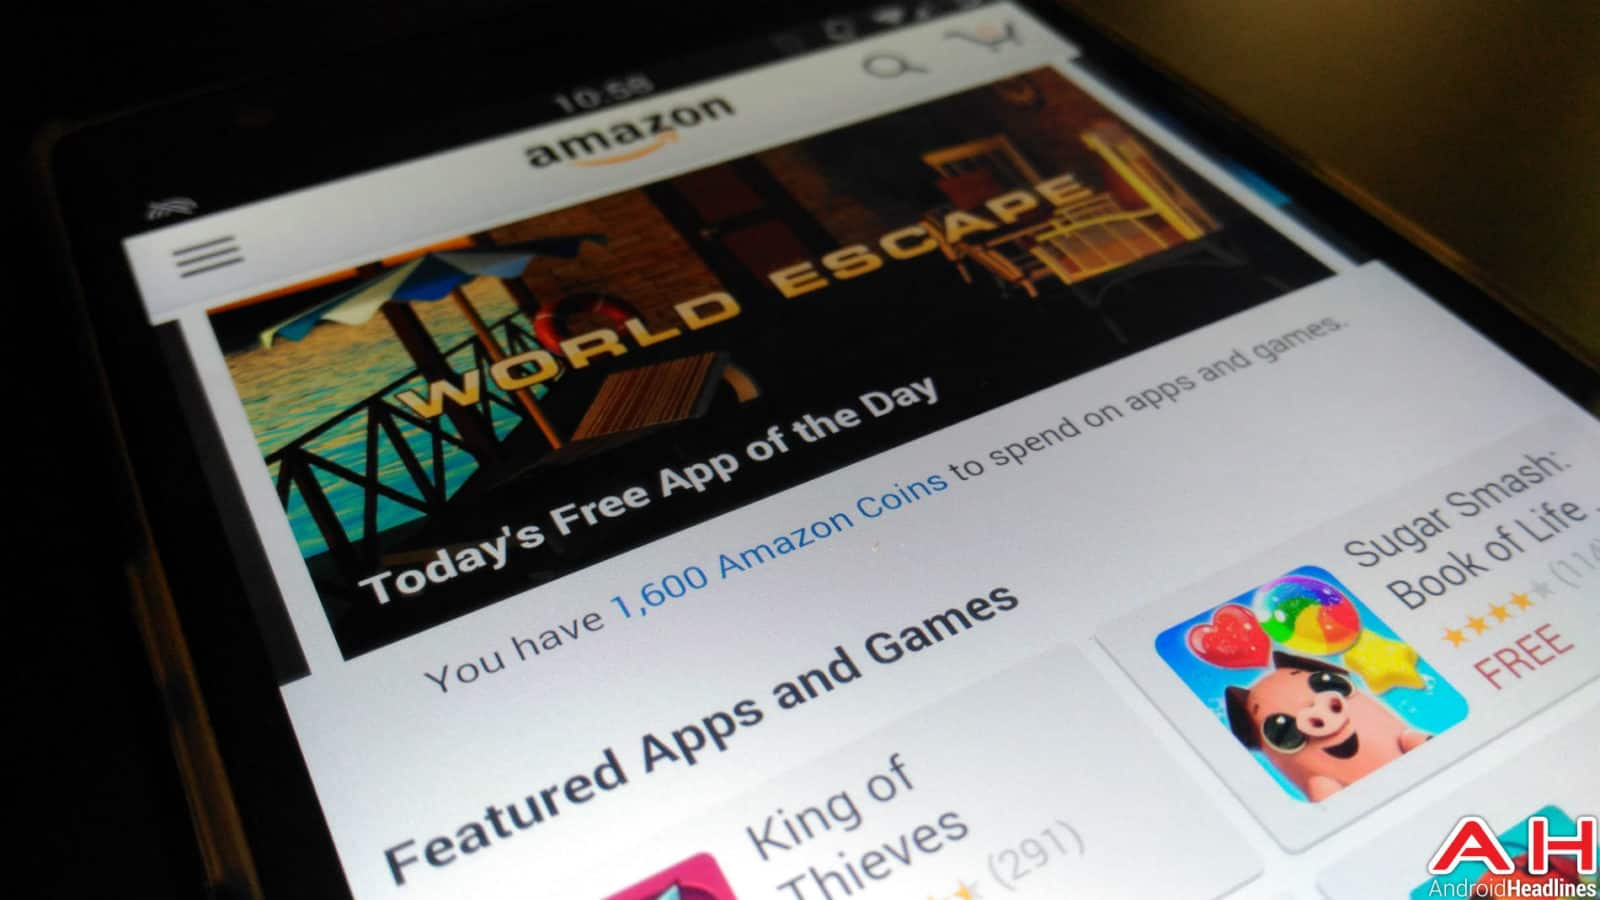 Amazon for Android APPS AH